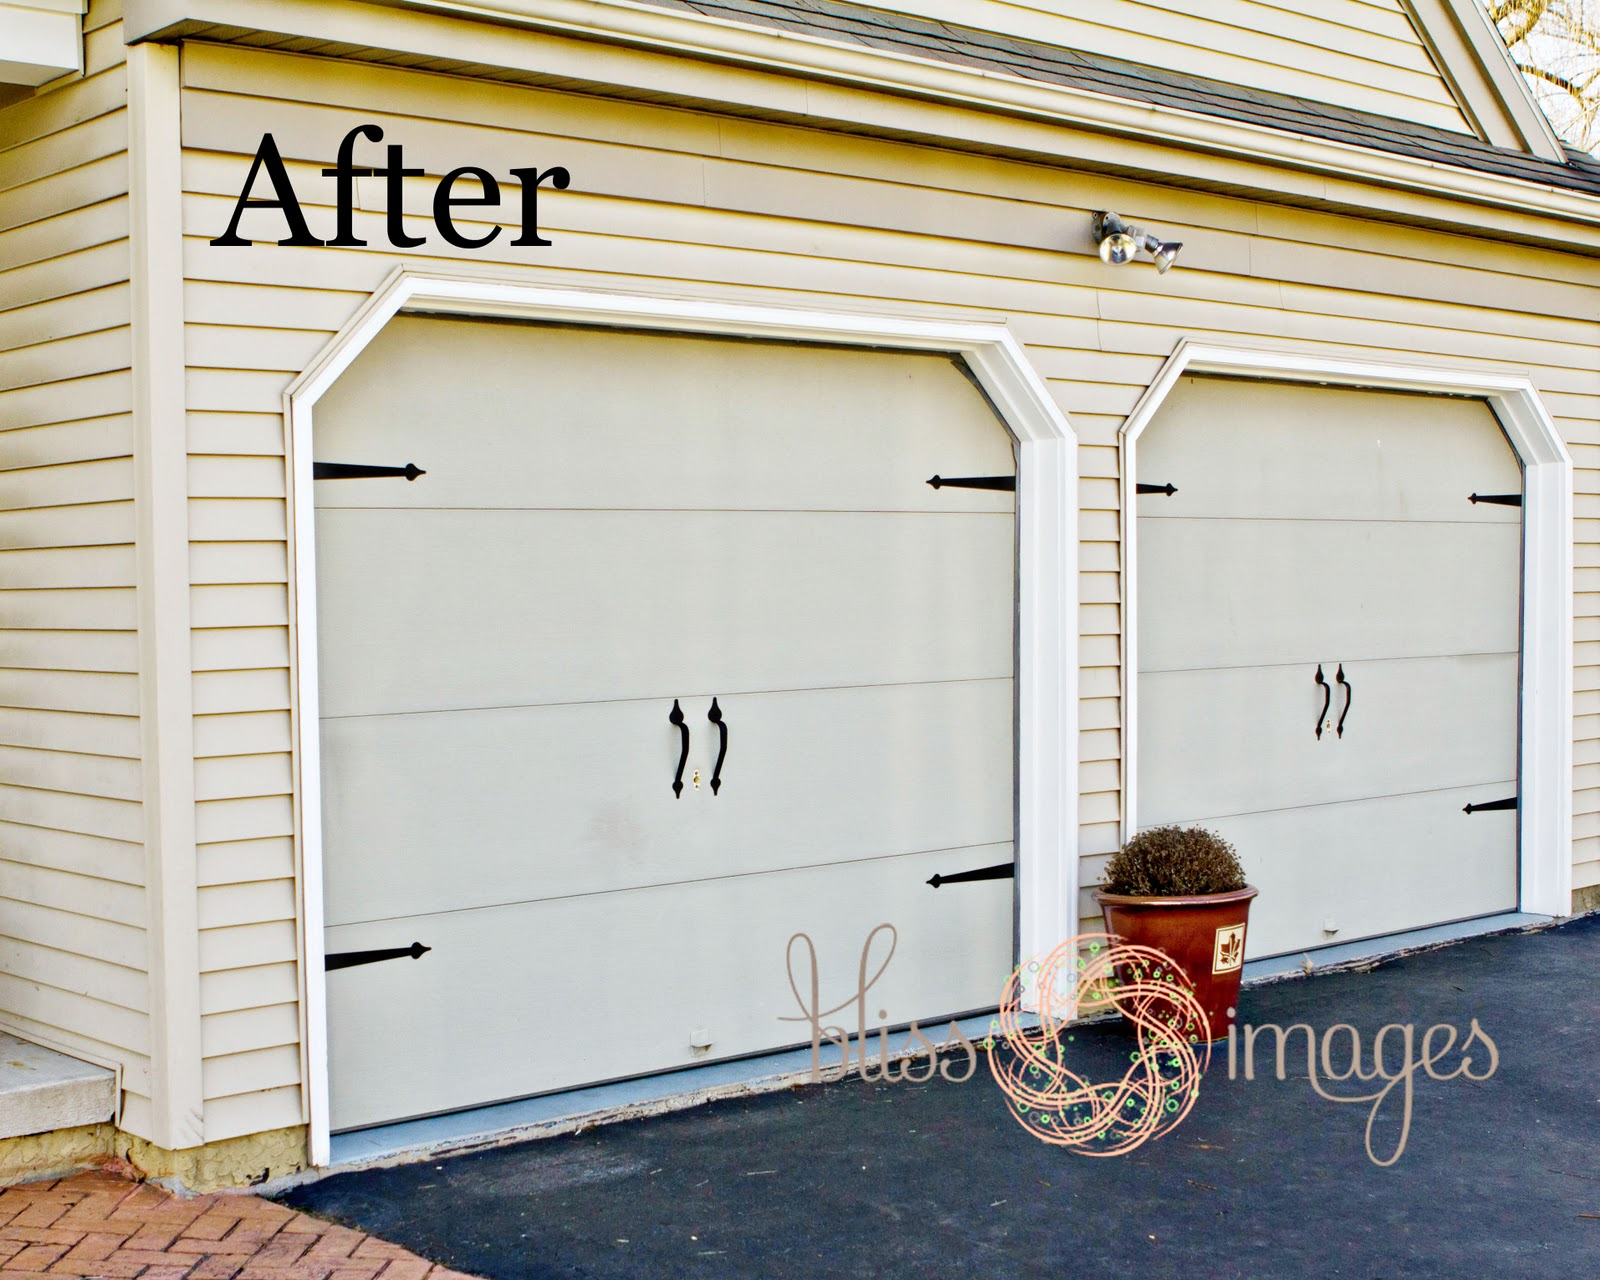 Bliss images and beyond new garage doors seriously loving the transformation rubansaba